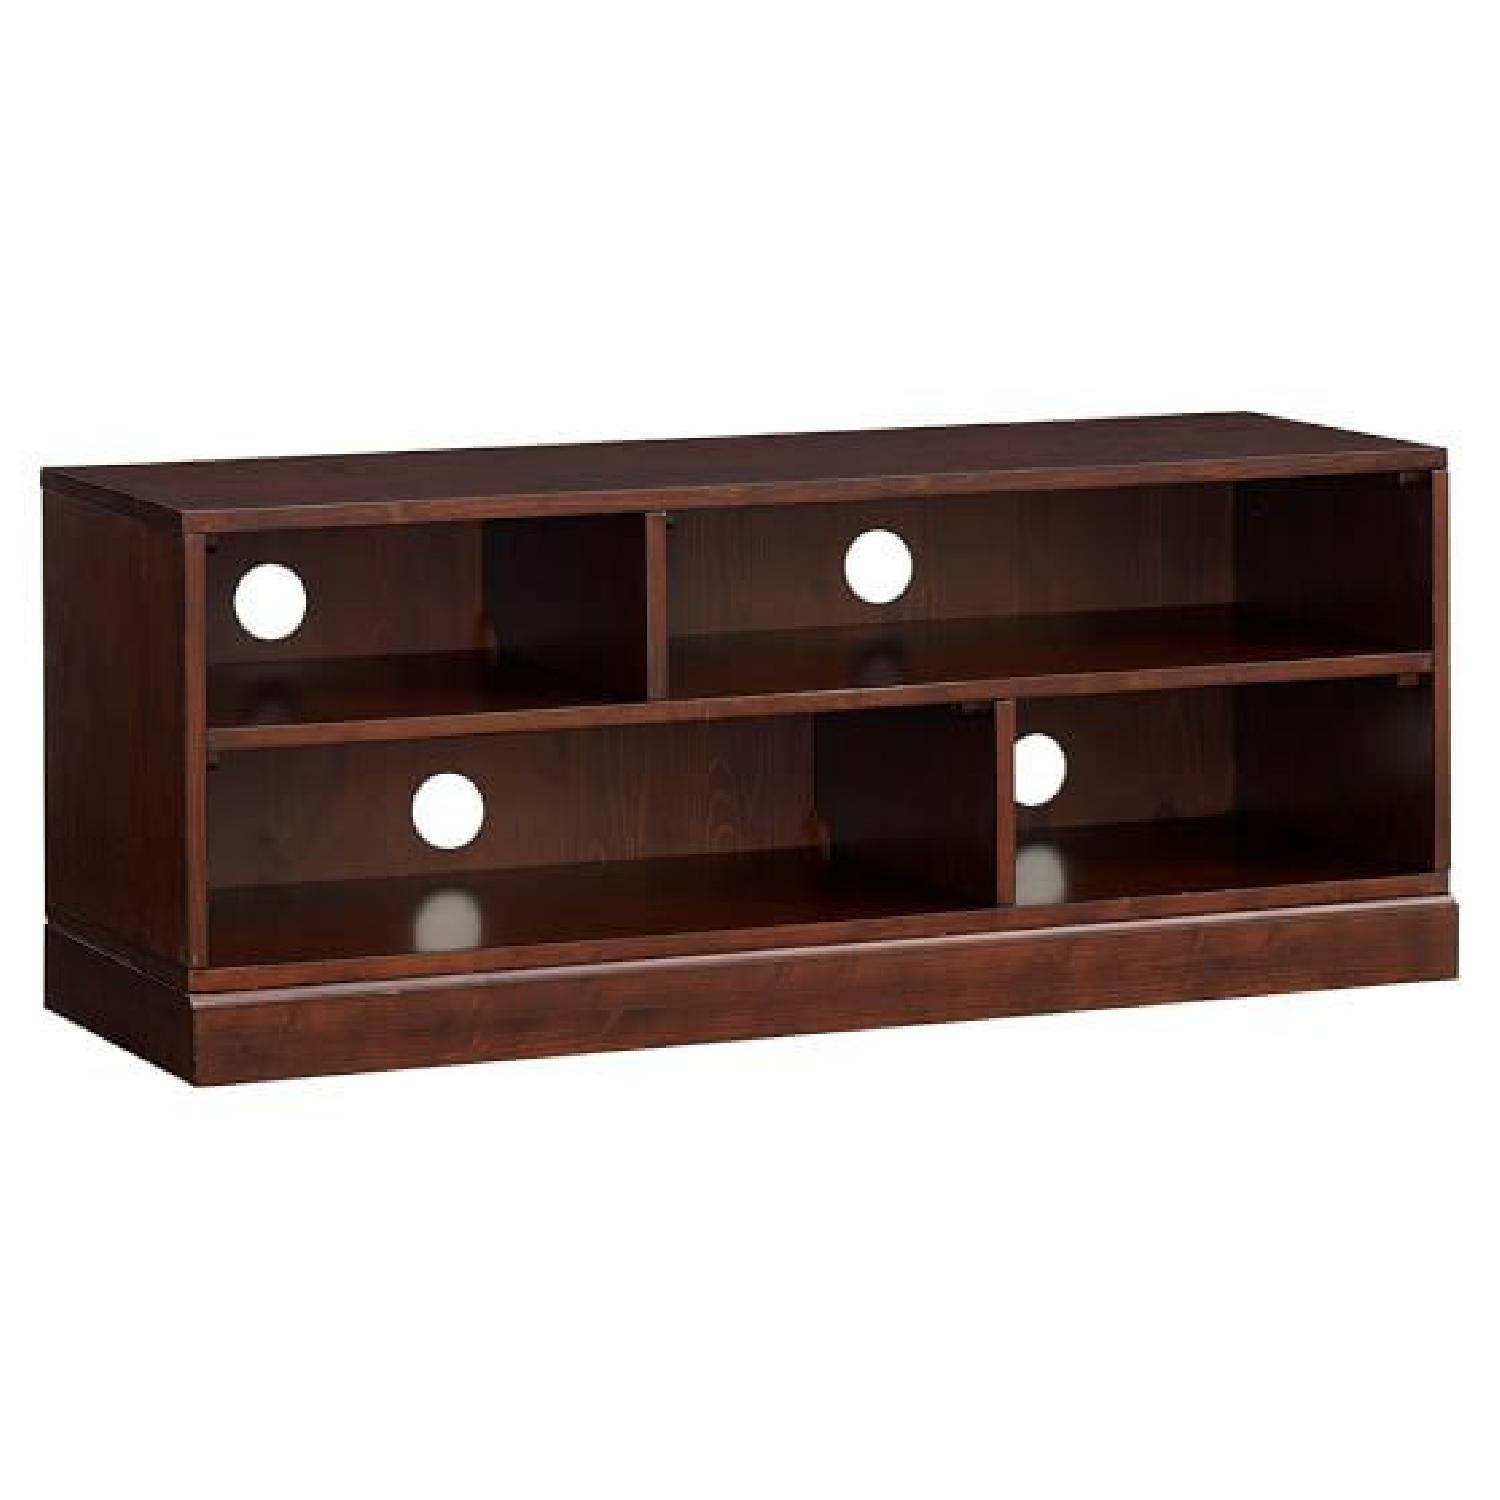 Pottery Barn Stack Me Up Media Console - image-0